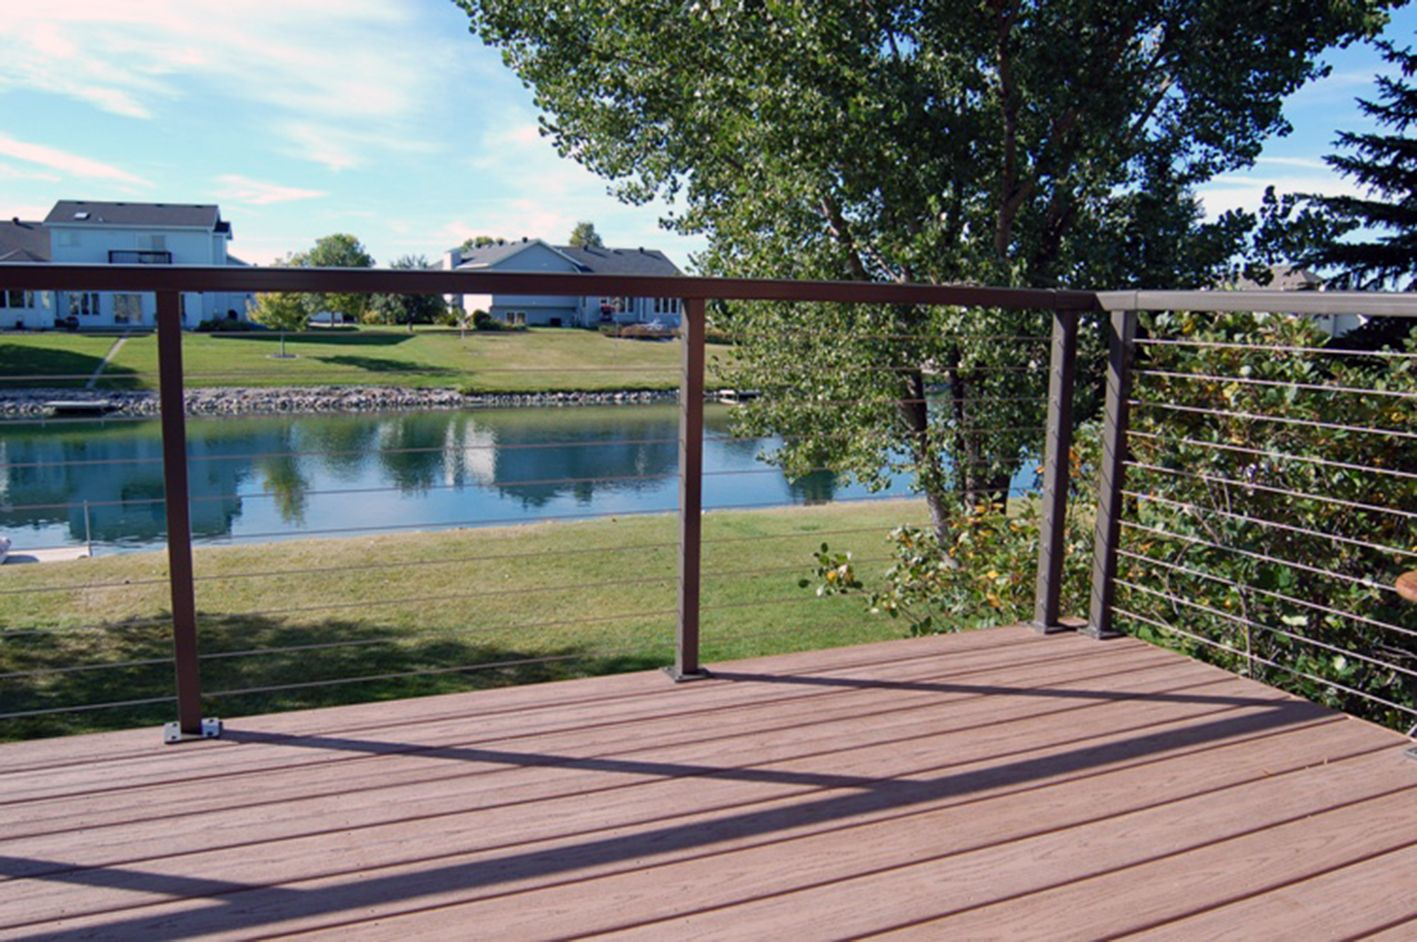 durarails powder coated aluminum top rails and posts provide the ultimate framework for the new cable deck railingdeck railing designporch